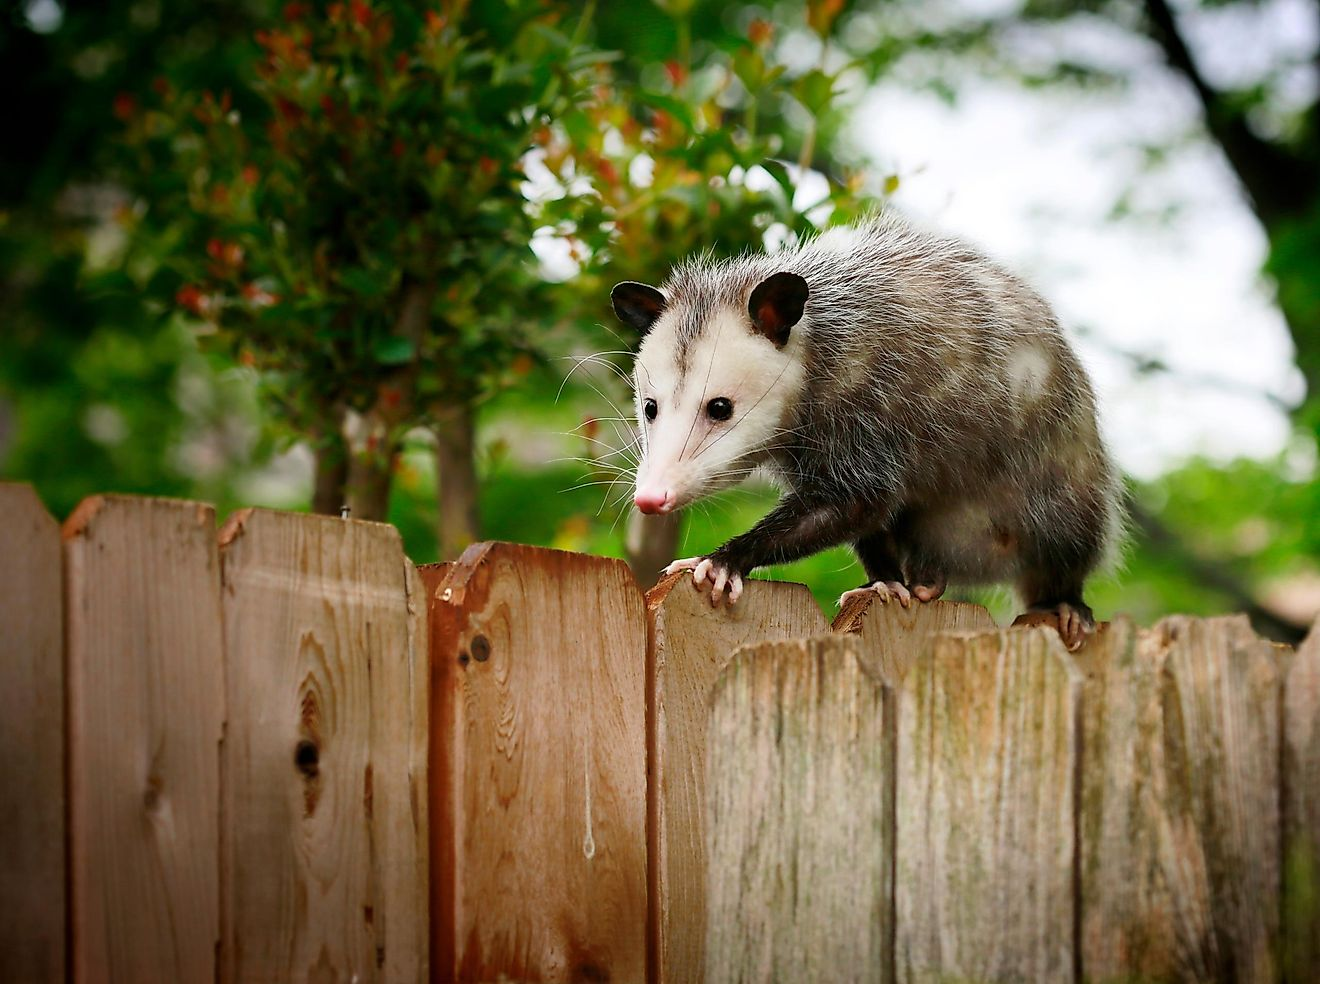 Opossum walking on a backyard fence.